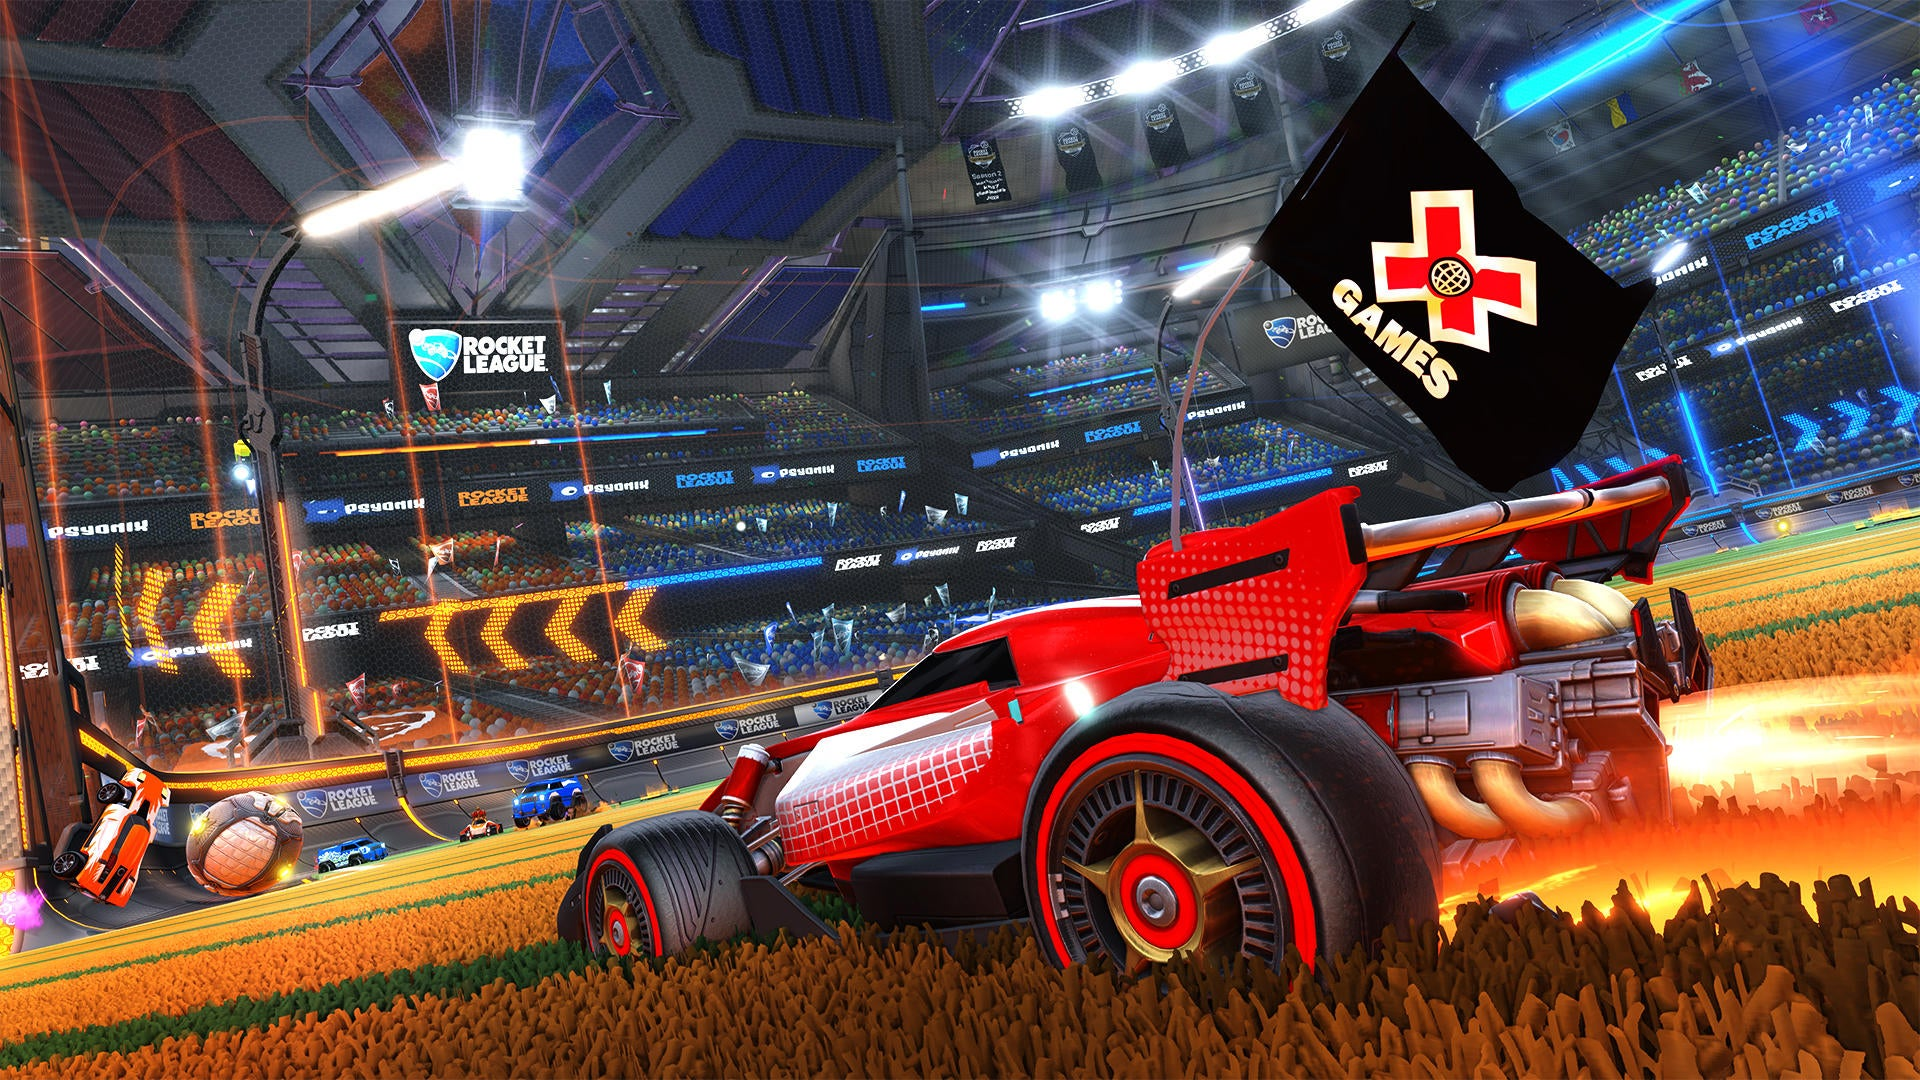 Rocket League Pros Take on the Summer X Games Image